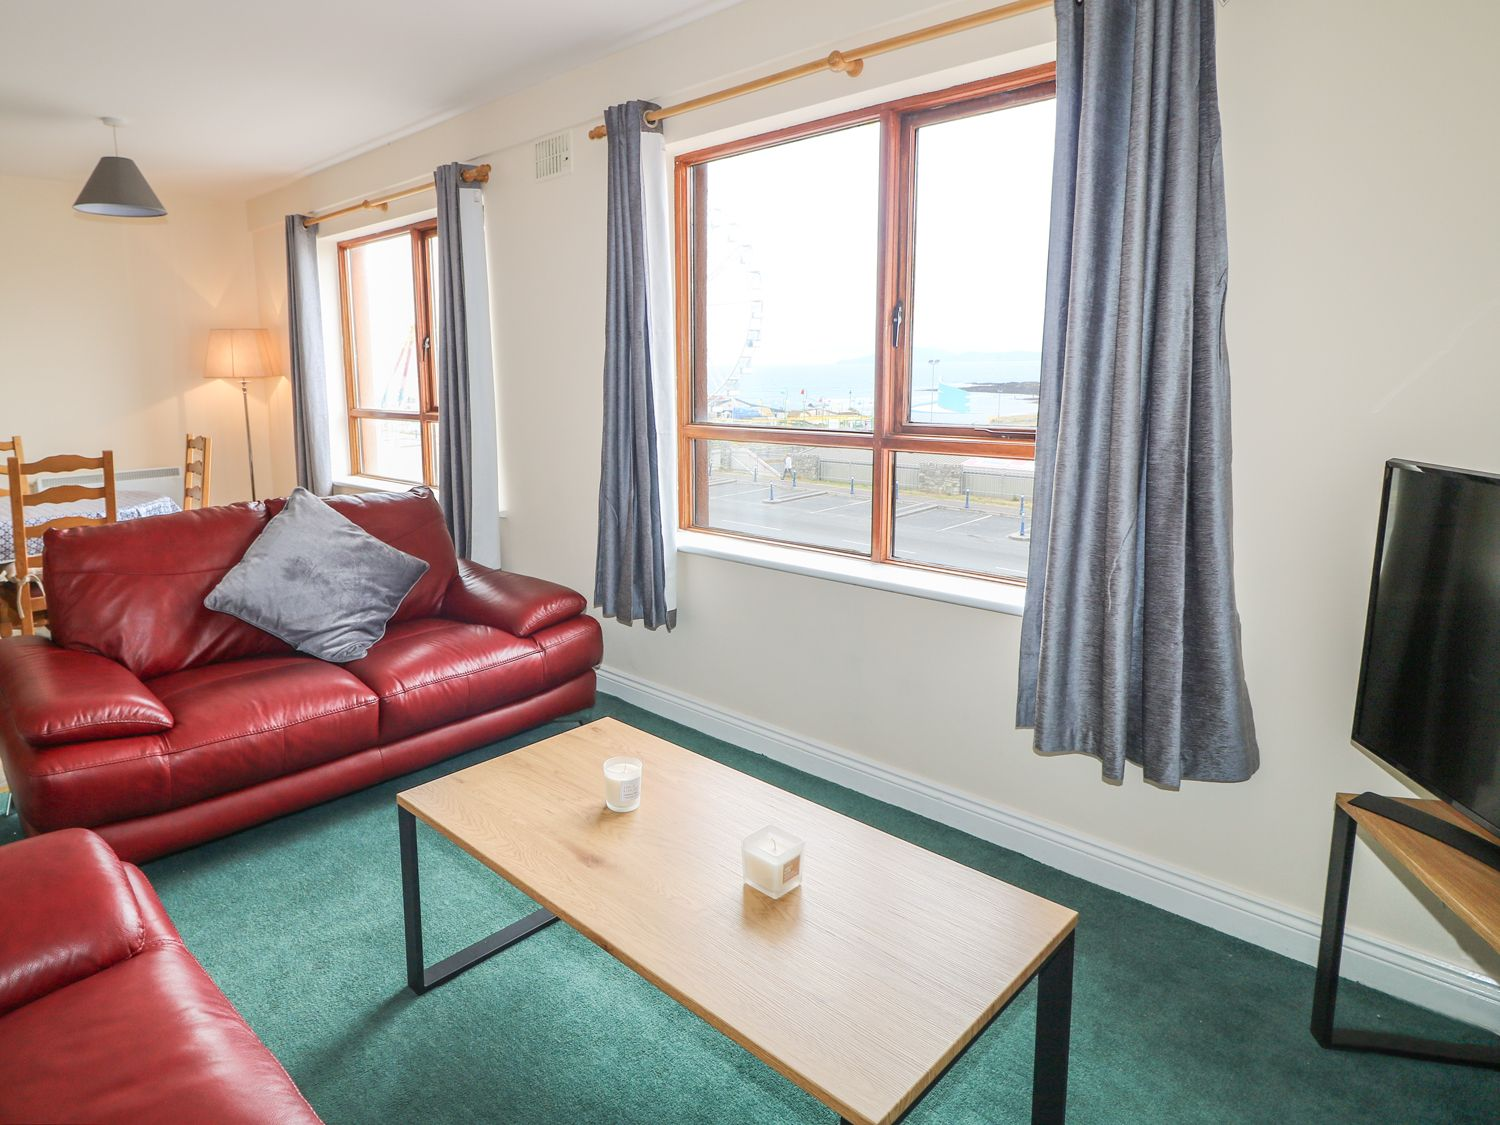 Apartment 42 - County Donegal - 990139 - photo 1